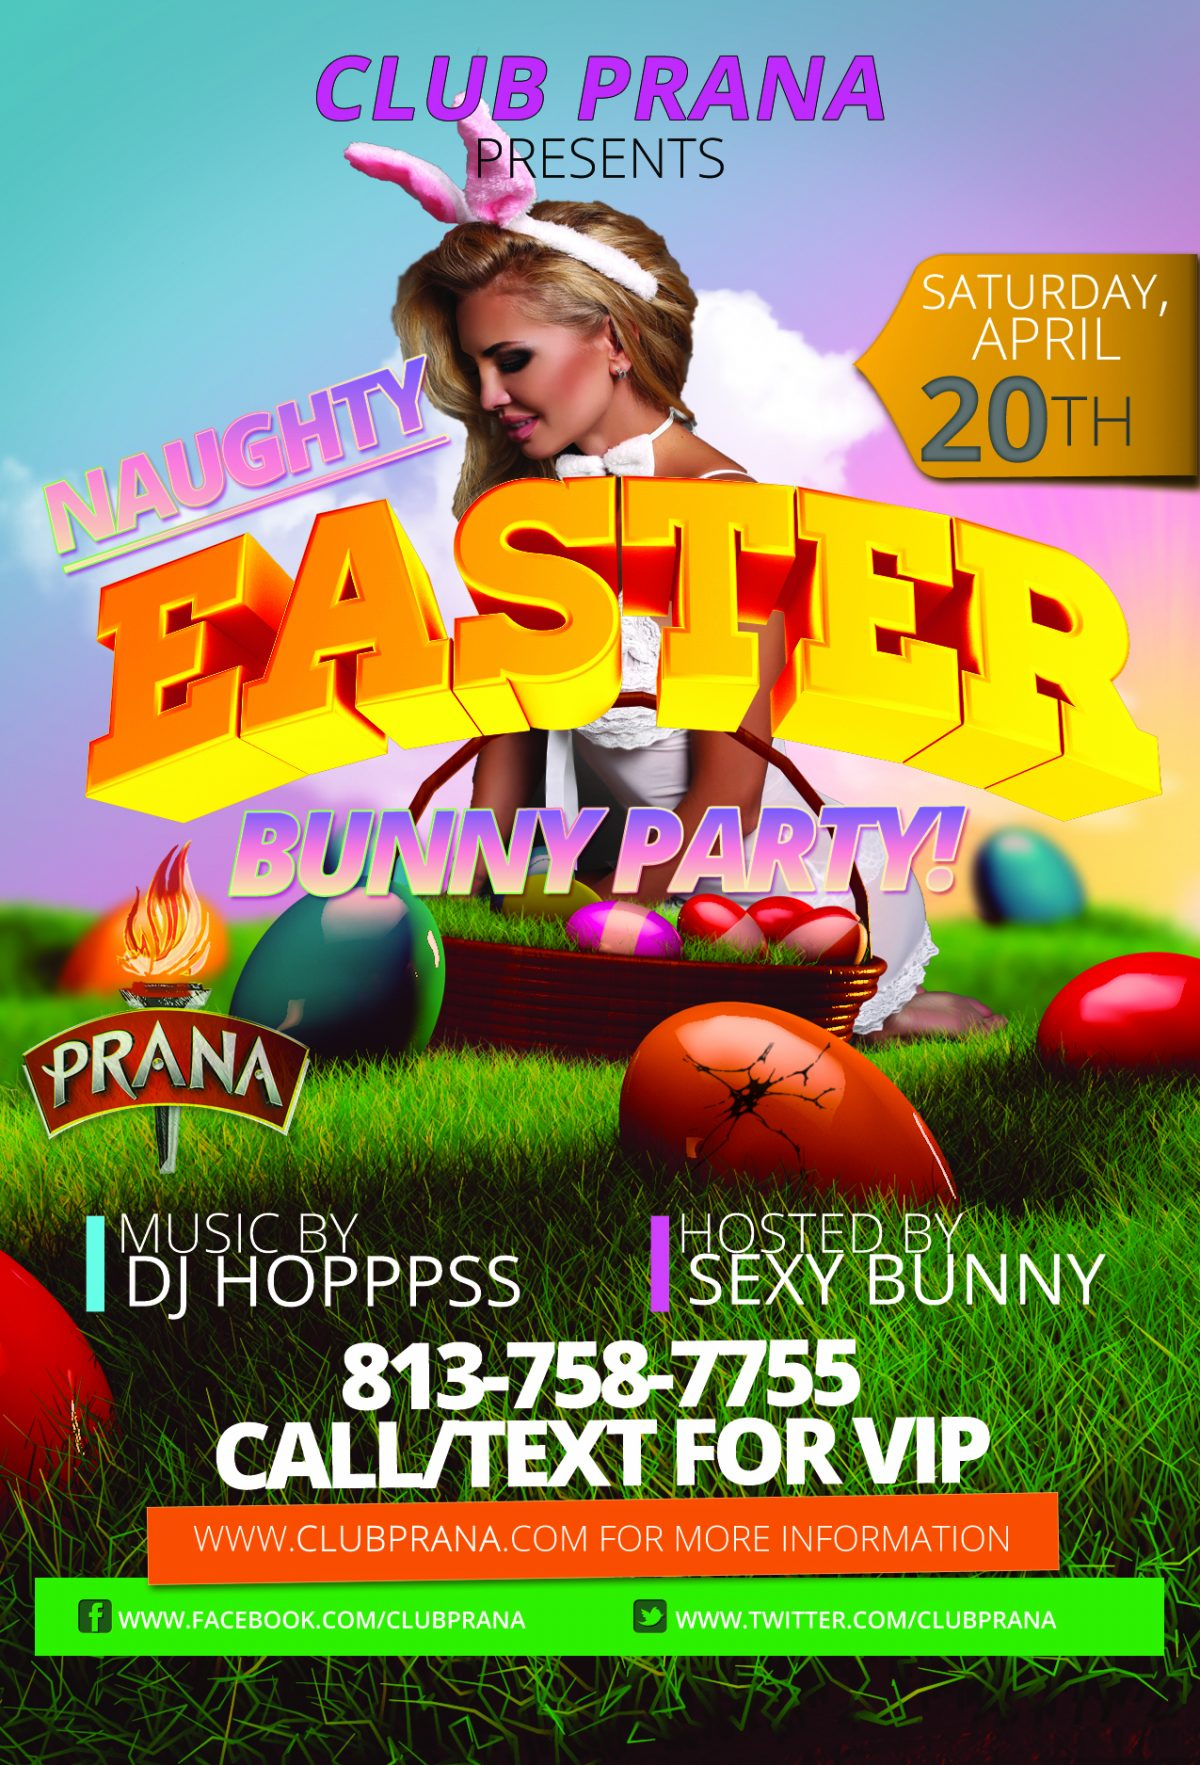 Naughty Easter Bunny Party